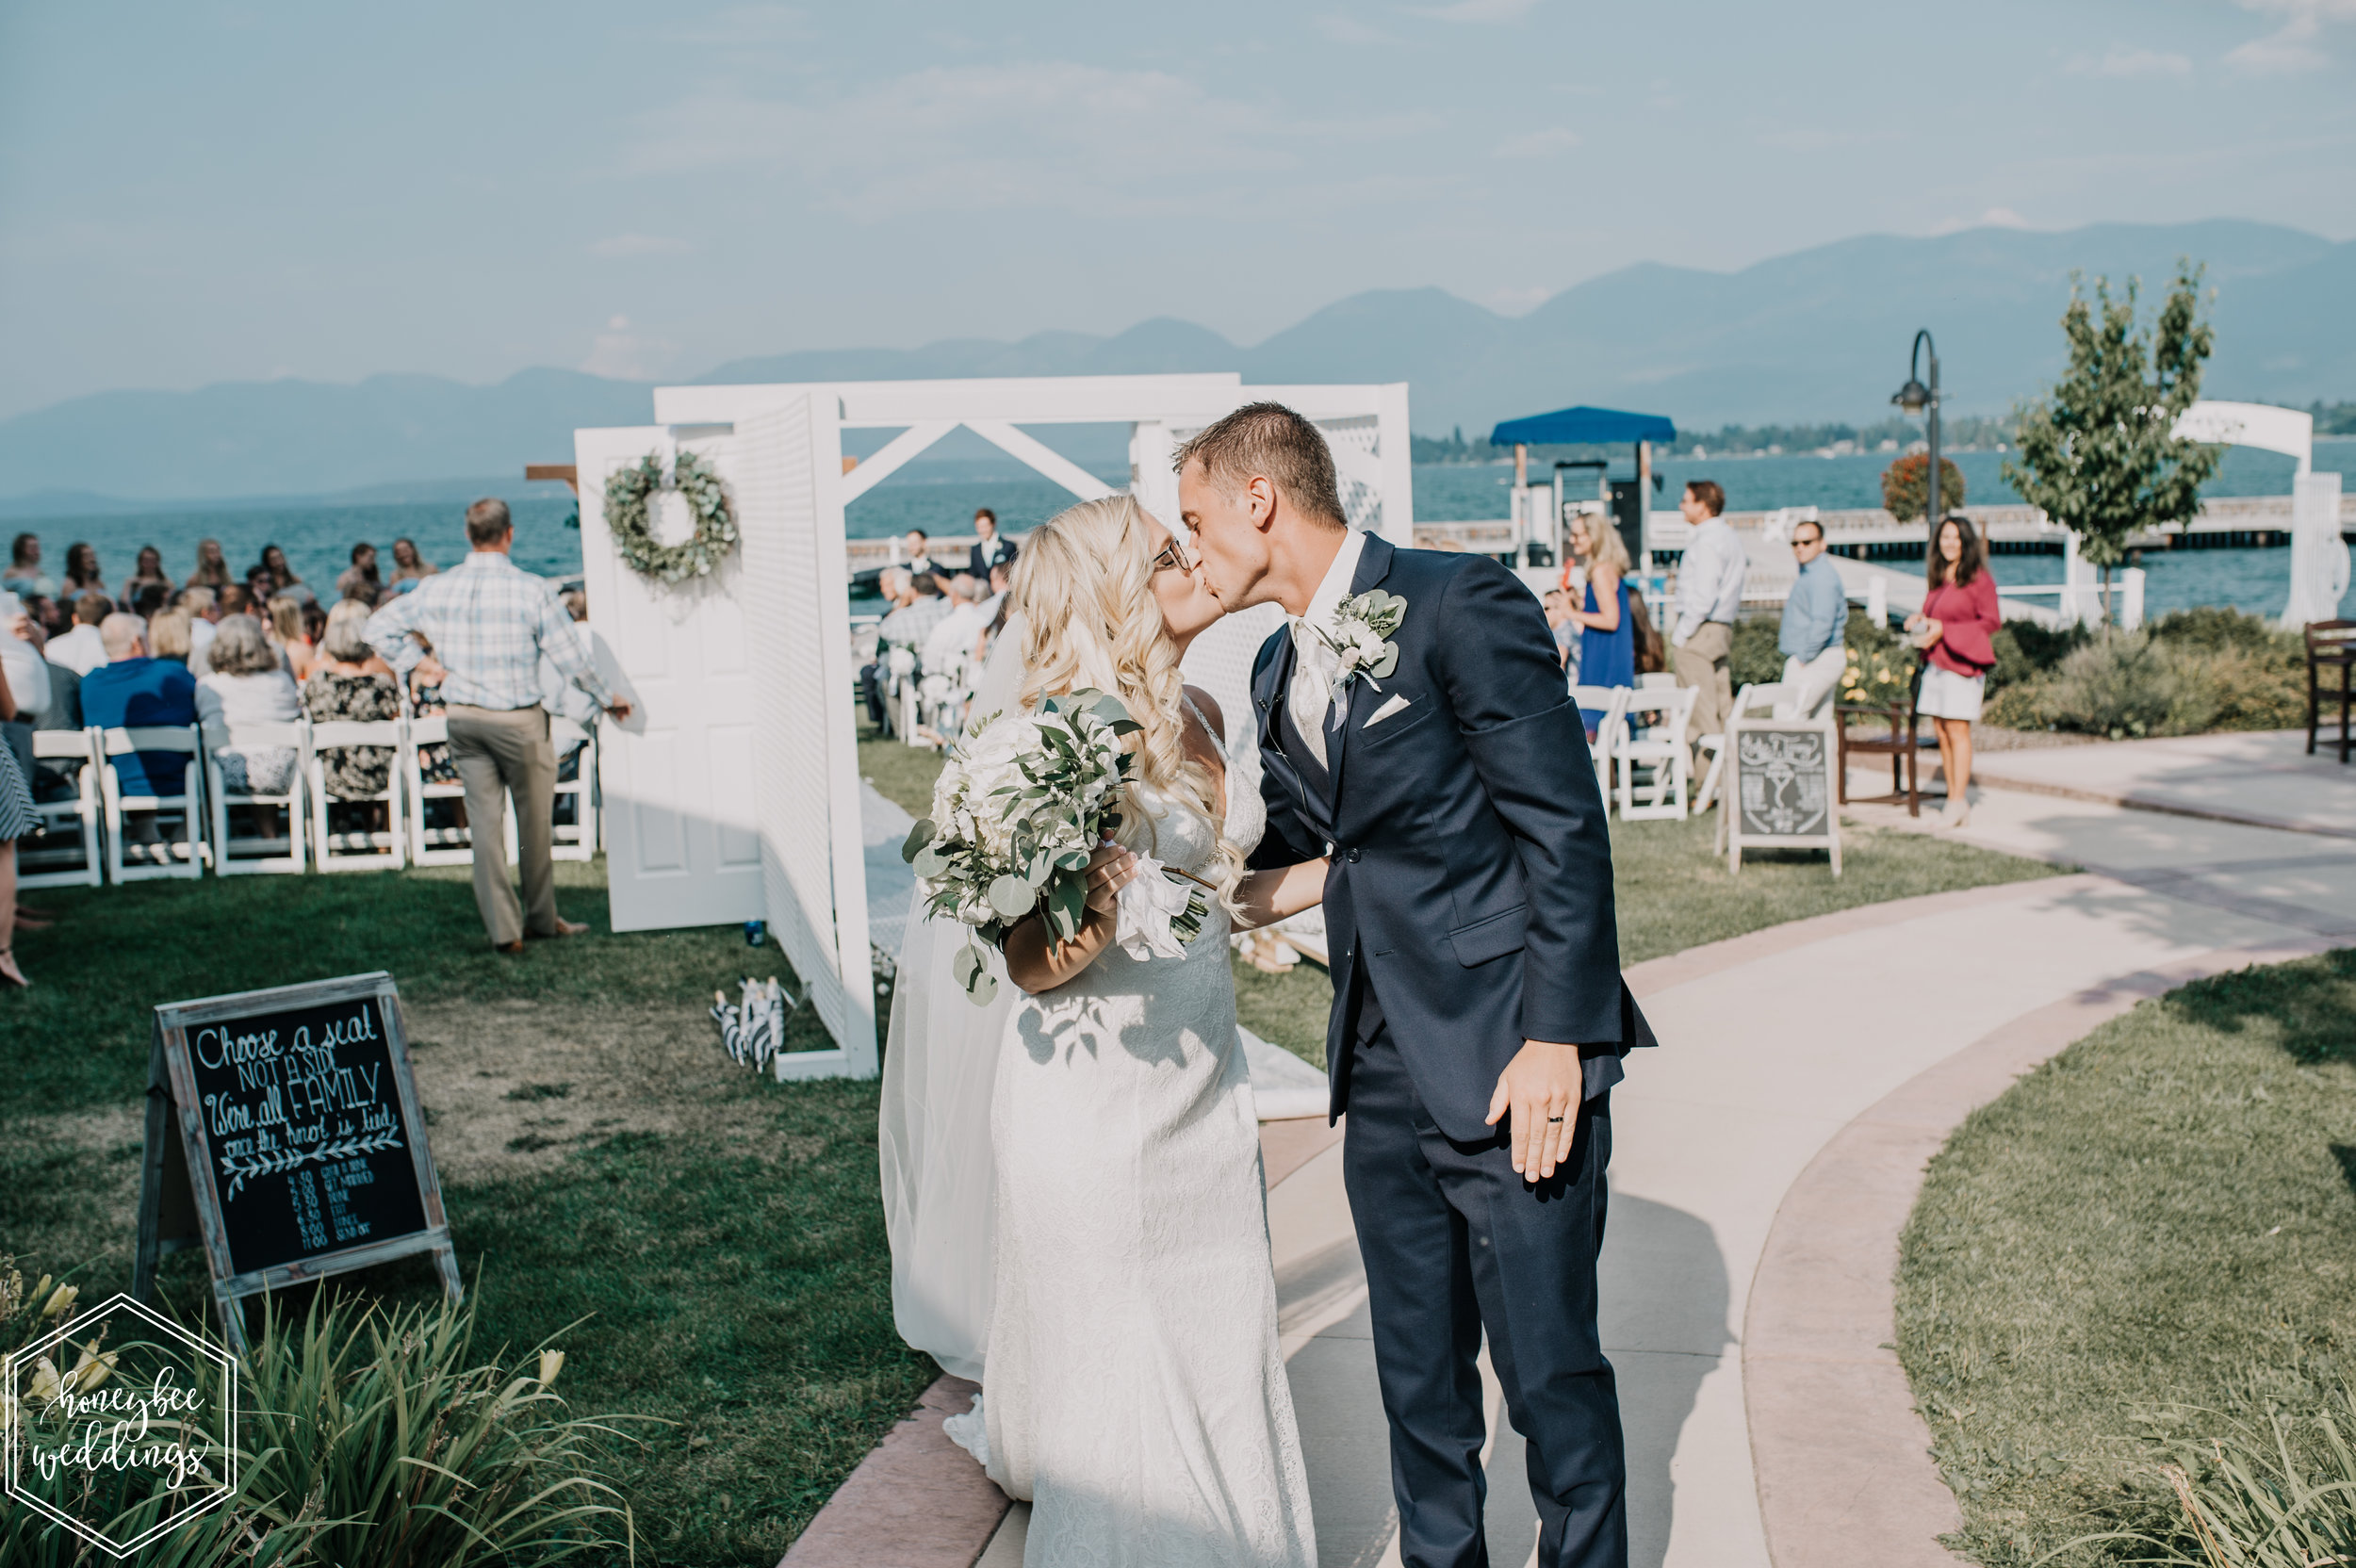 Kwatuqnuk Wedding_Montana Wedding Photographer_Katie White & Tommy Tosic_August 04, 2018-518.jpg